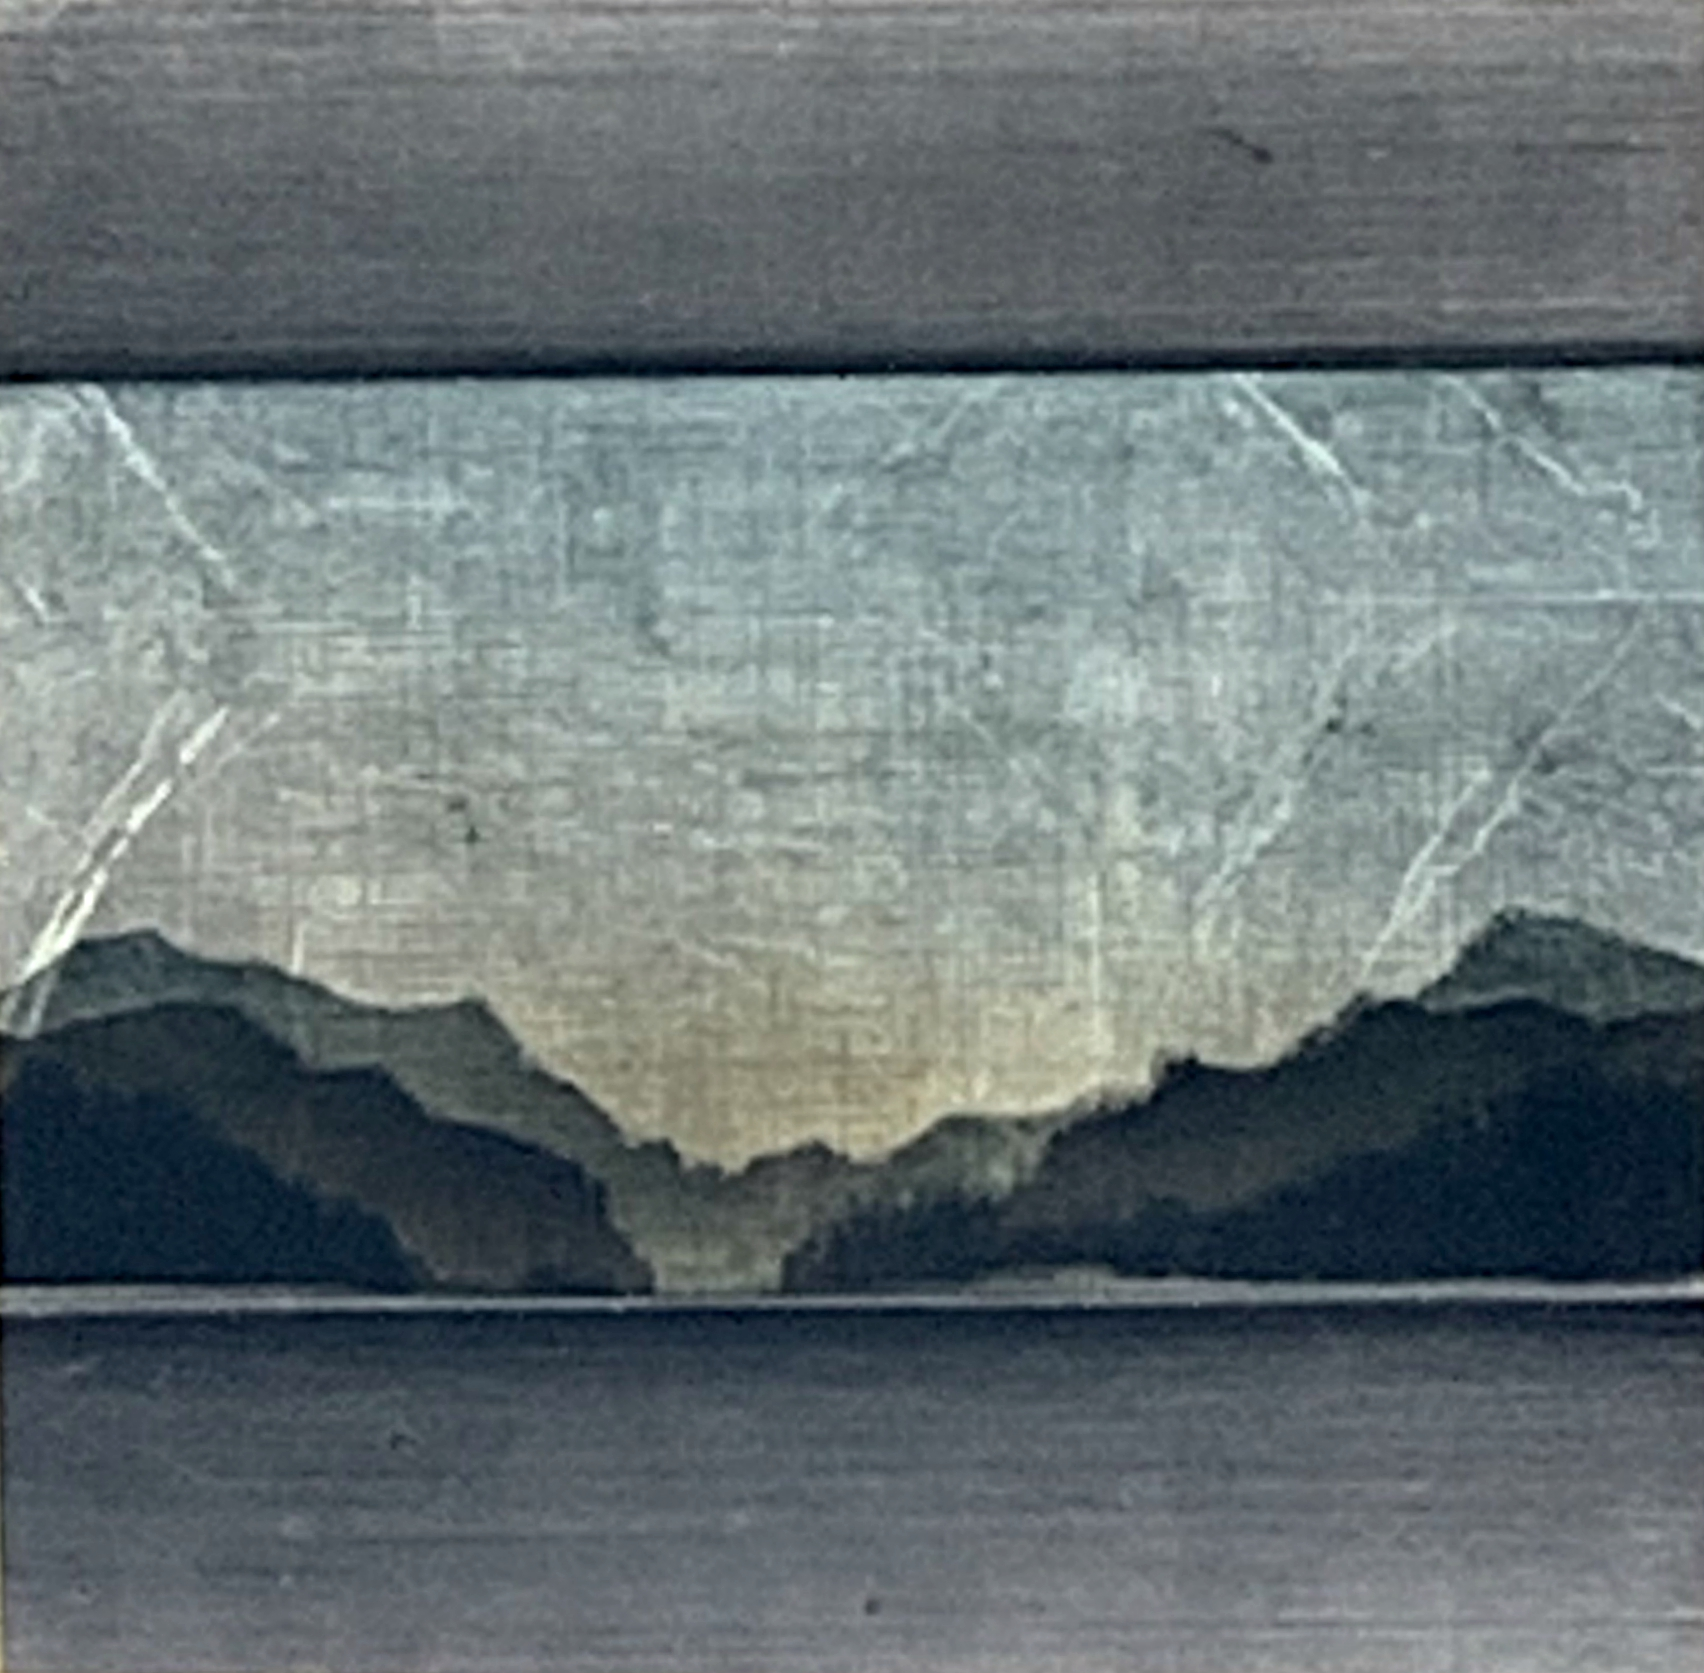 184, mixed media landscape painting by David Graff | Effusion Art Gallery + Cast Glass Studio, Invermere BC